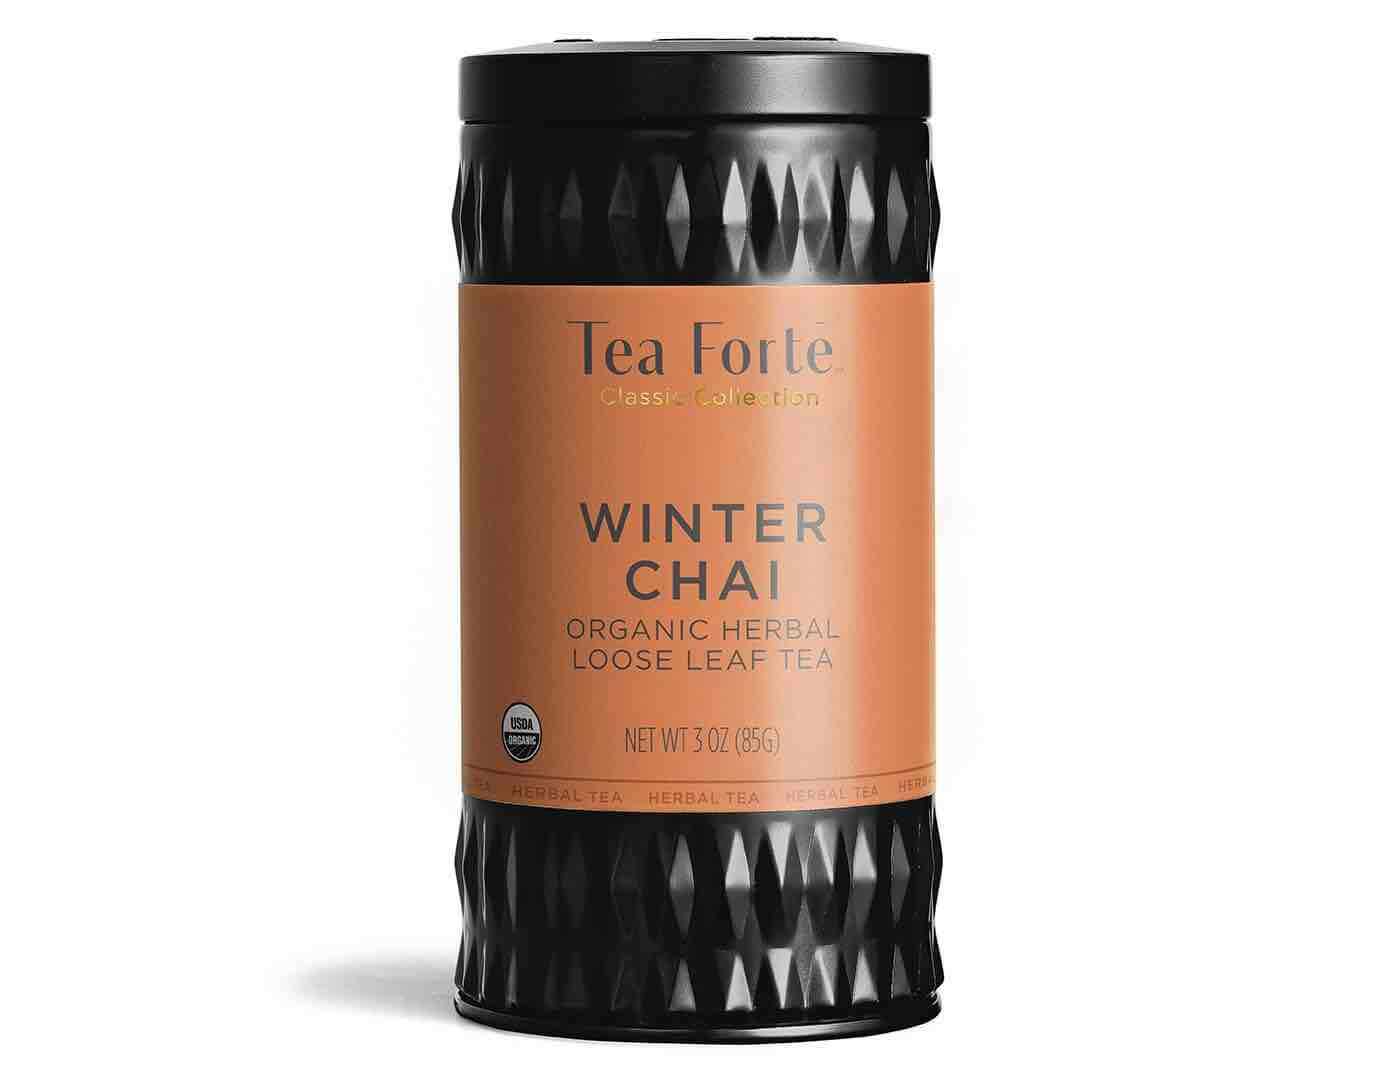 Tea Forte Herbal Tea Canister | Winter Chai